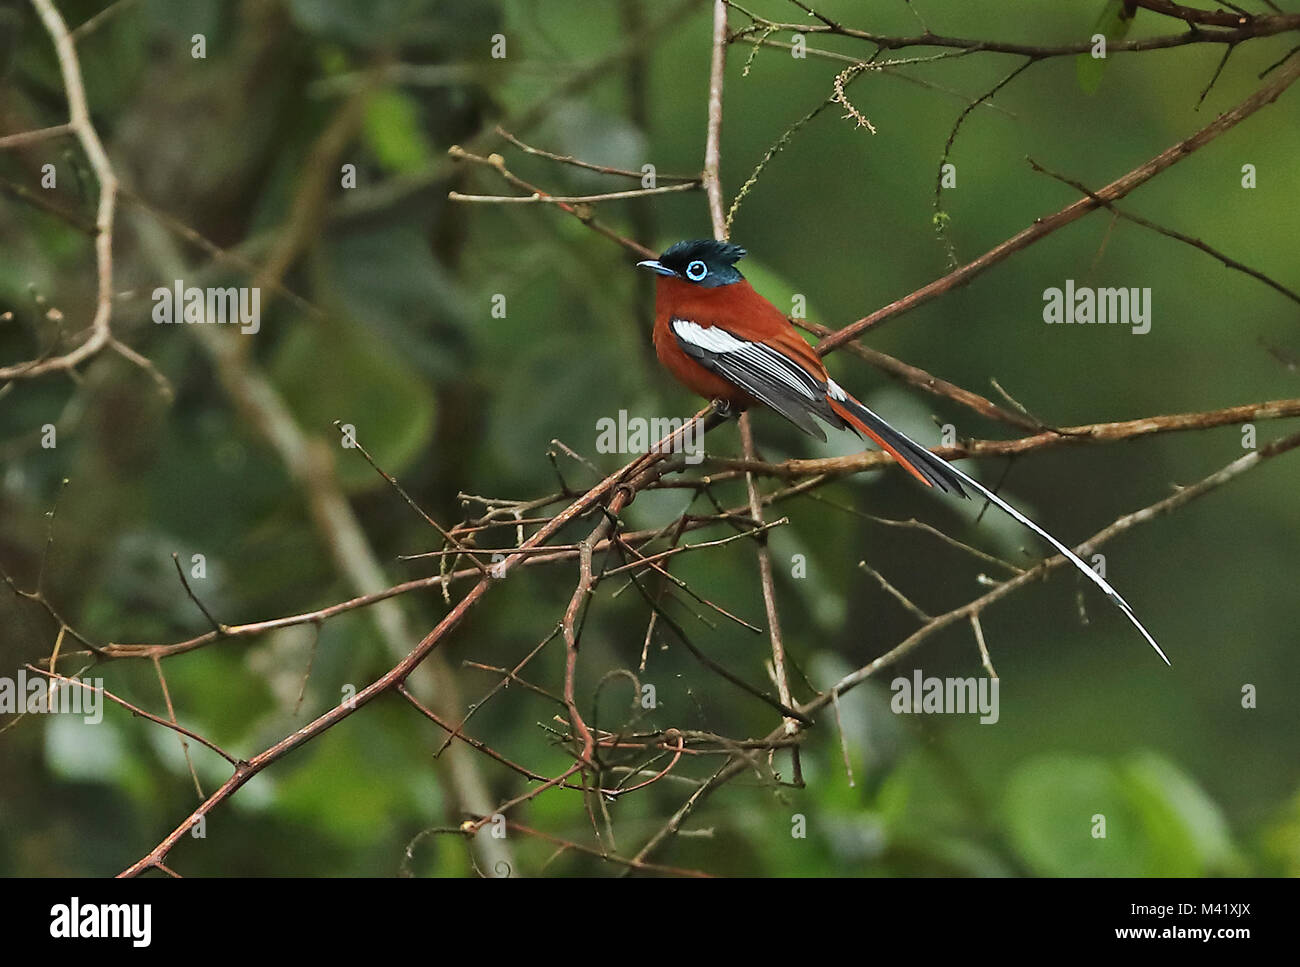 Madagascar Paradise-flycatcher (Terpsiphone mutata mutata) rufous morph adult male perched on branch, Madagascan Stock Photo